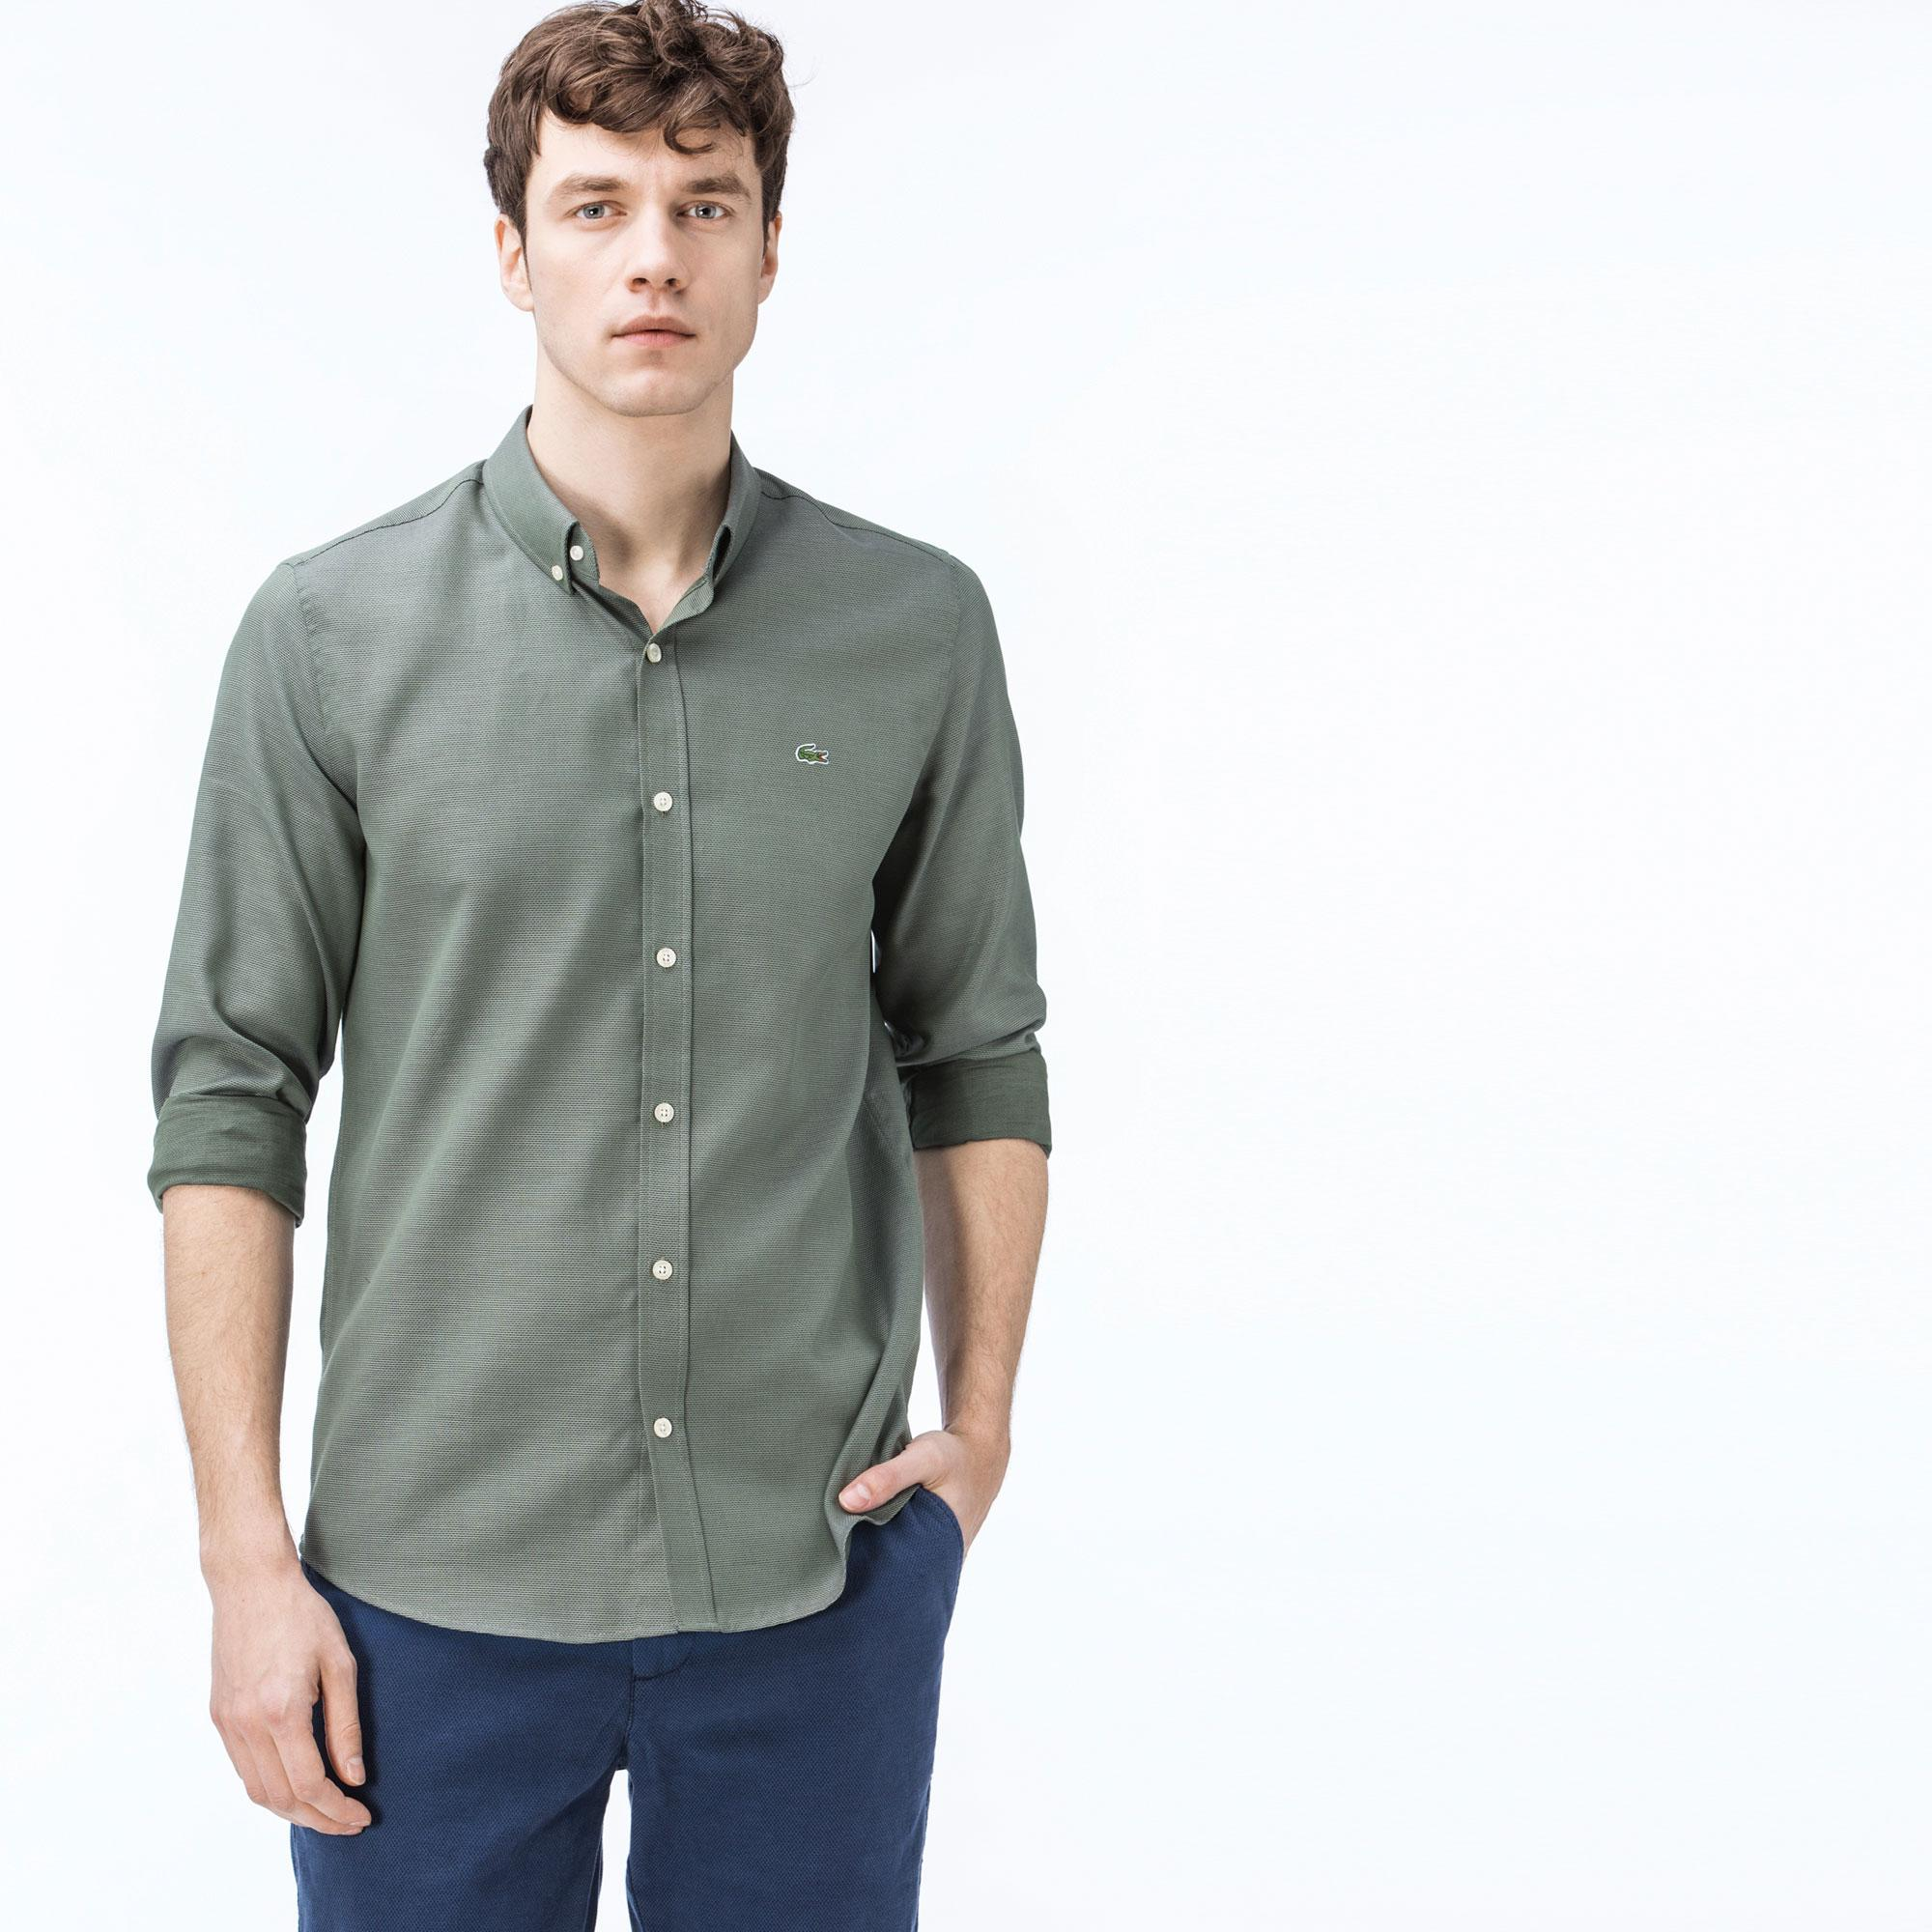 Lacoste Men's Wovens Shirts